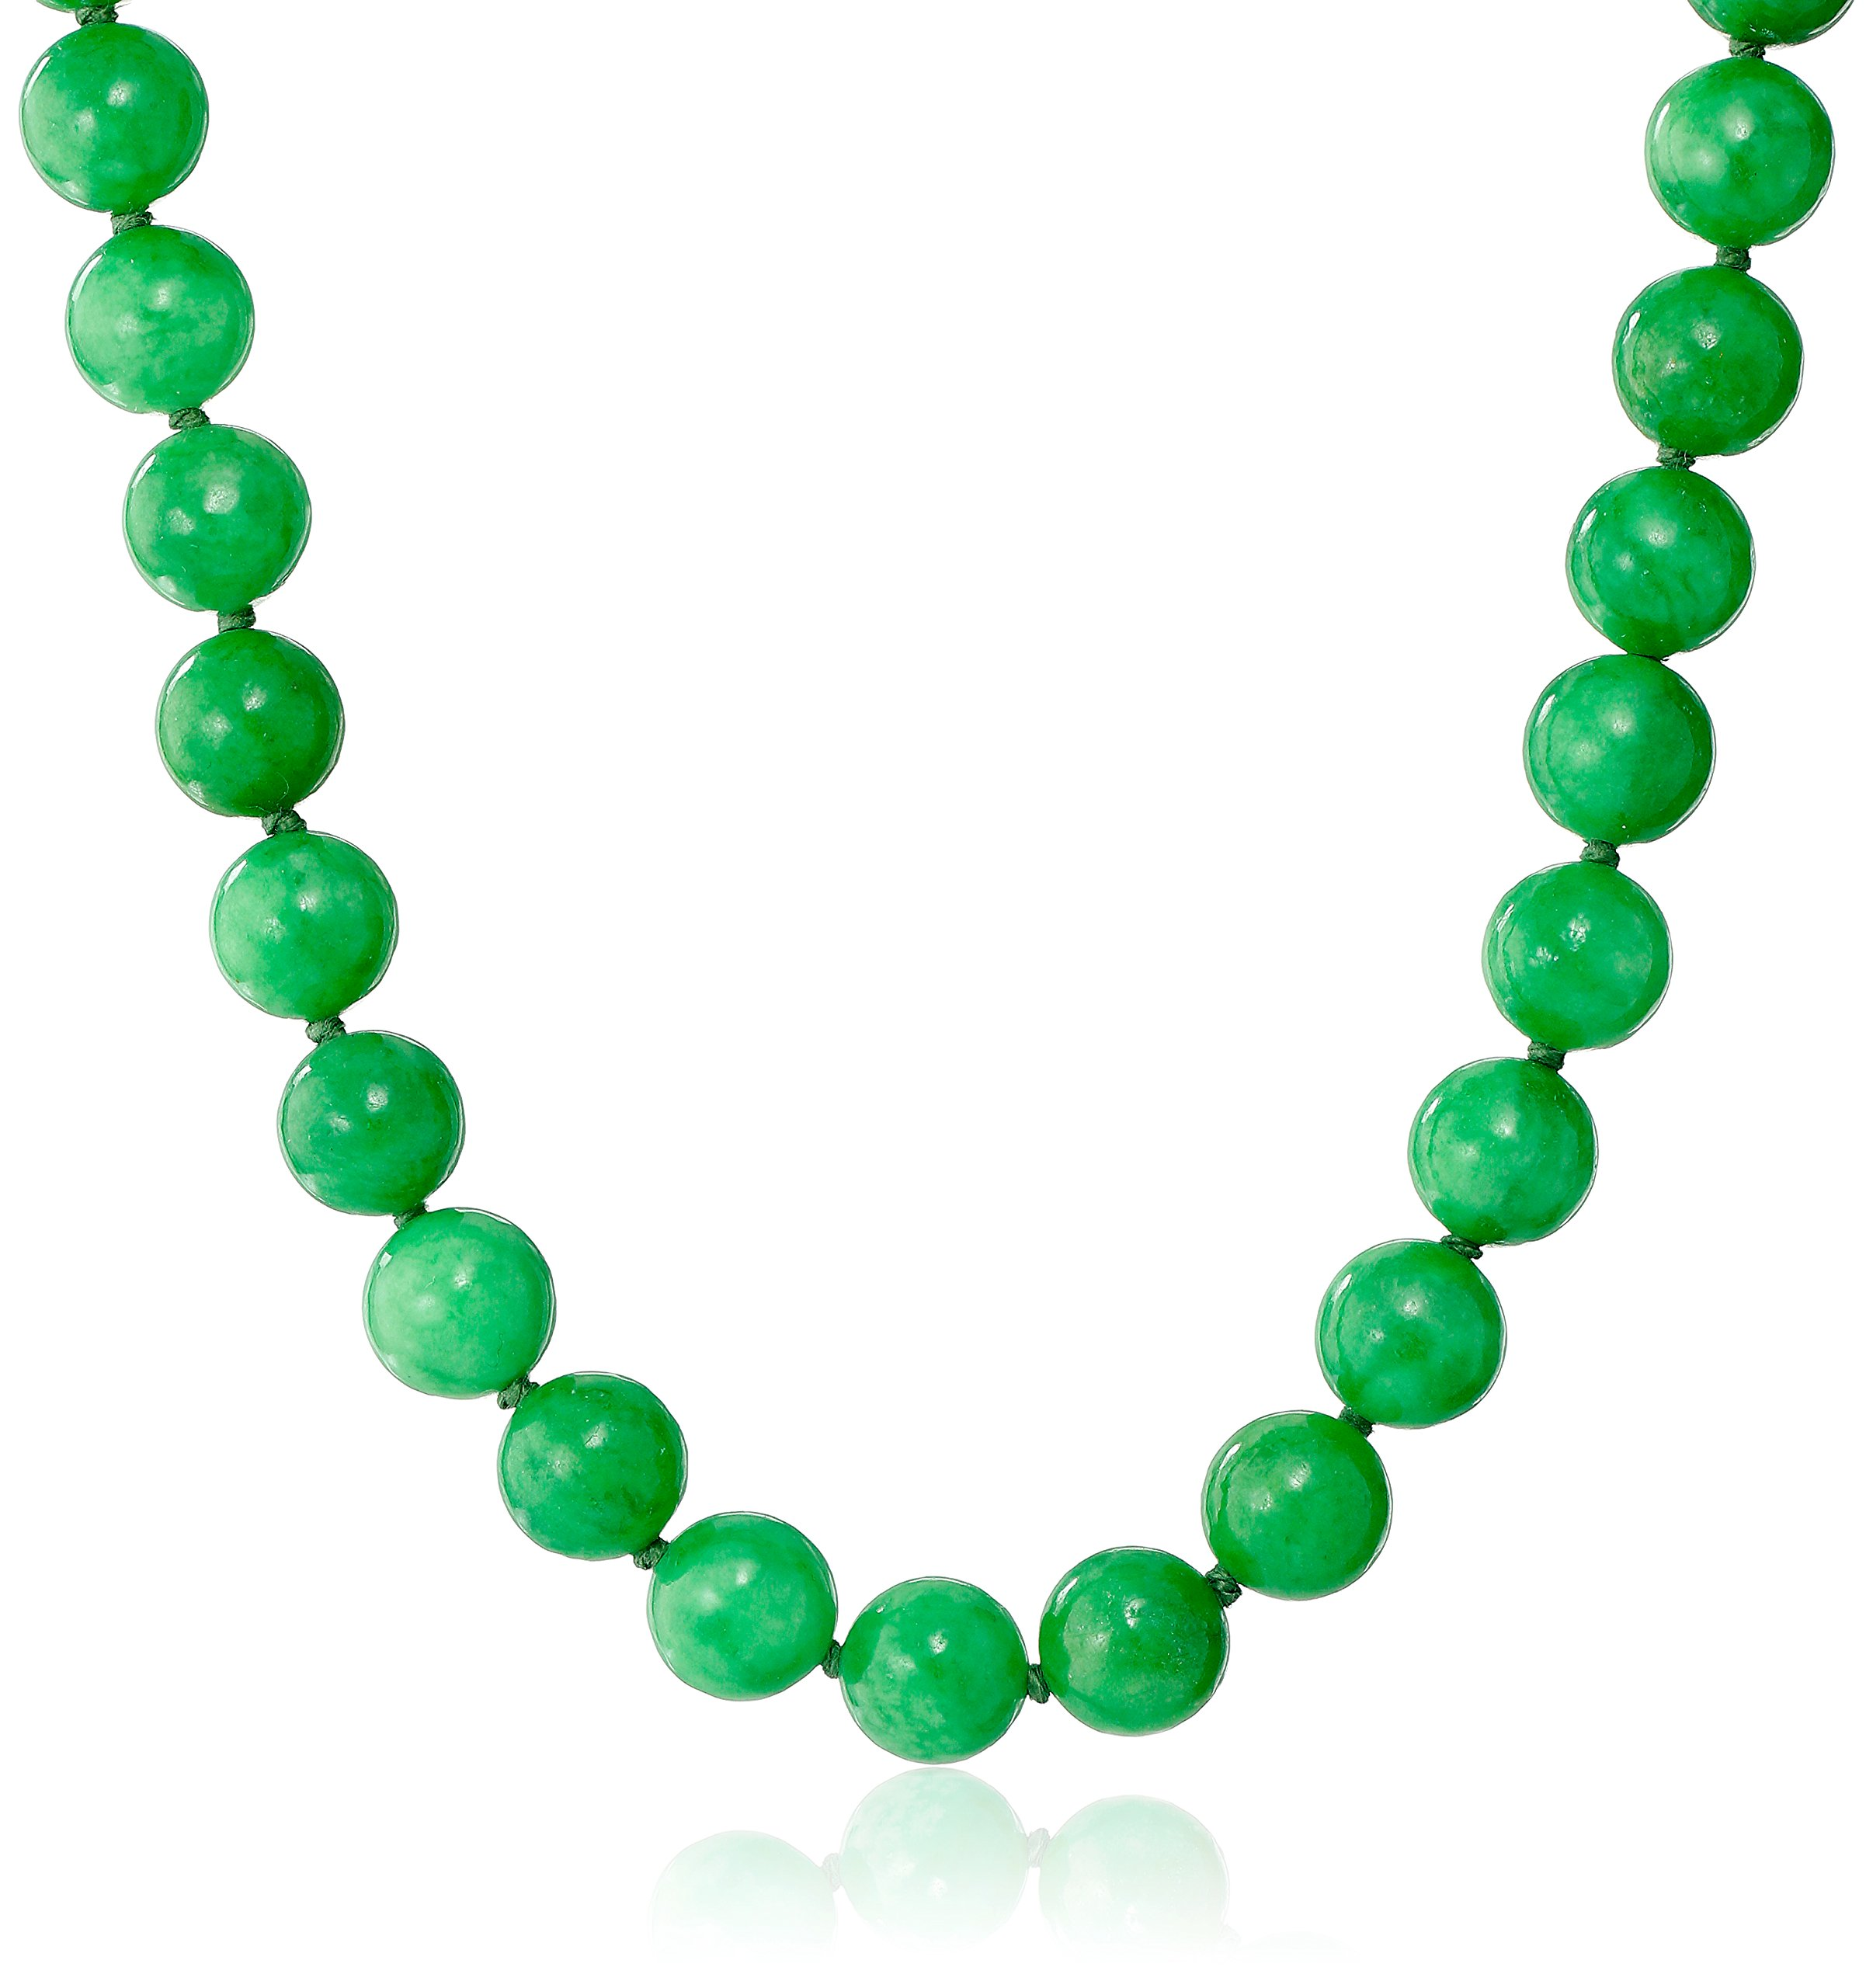 14k Yellow Gold 10mm Green Jade Strand Necklace, 18''